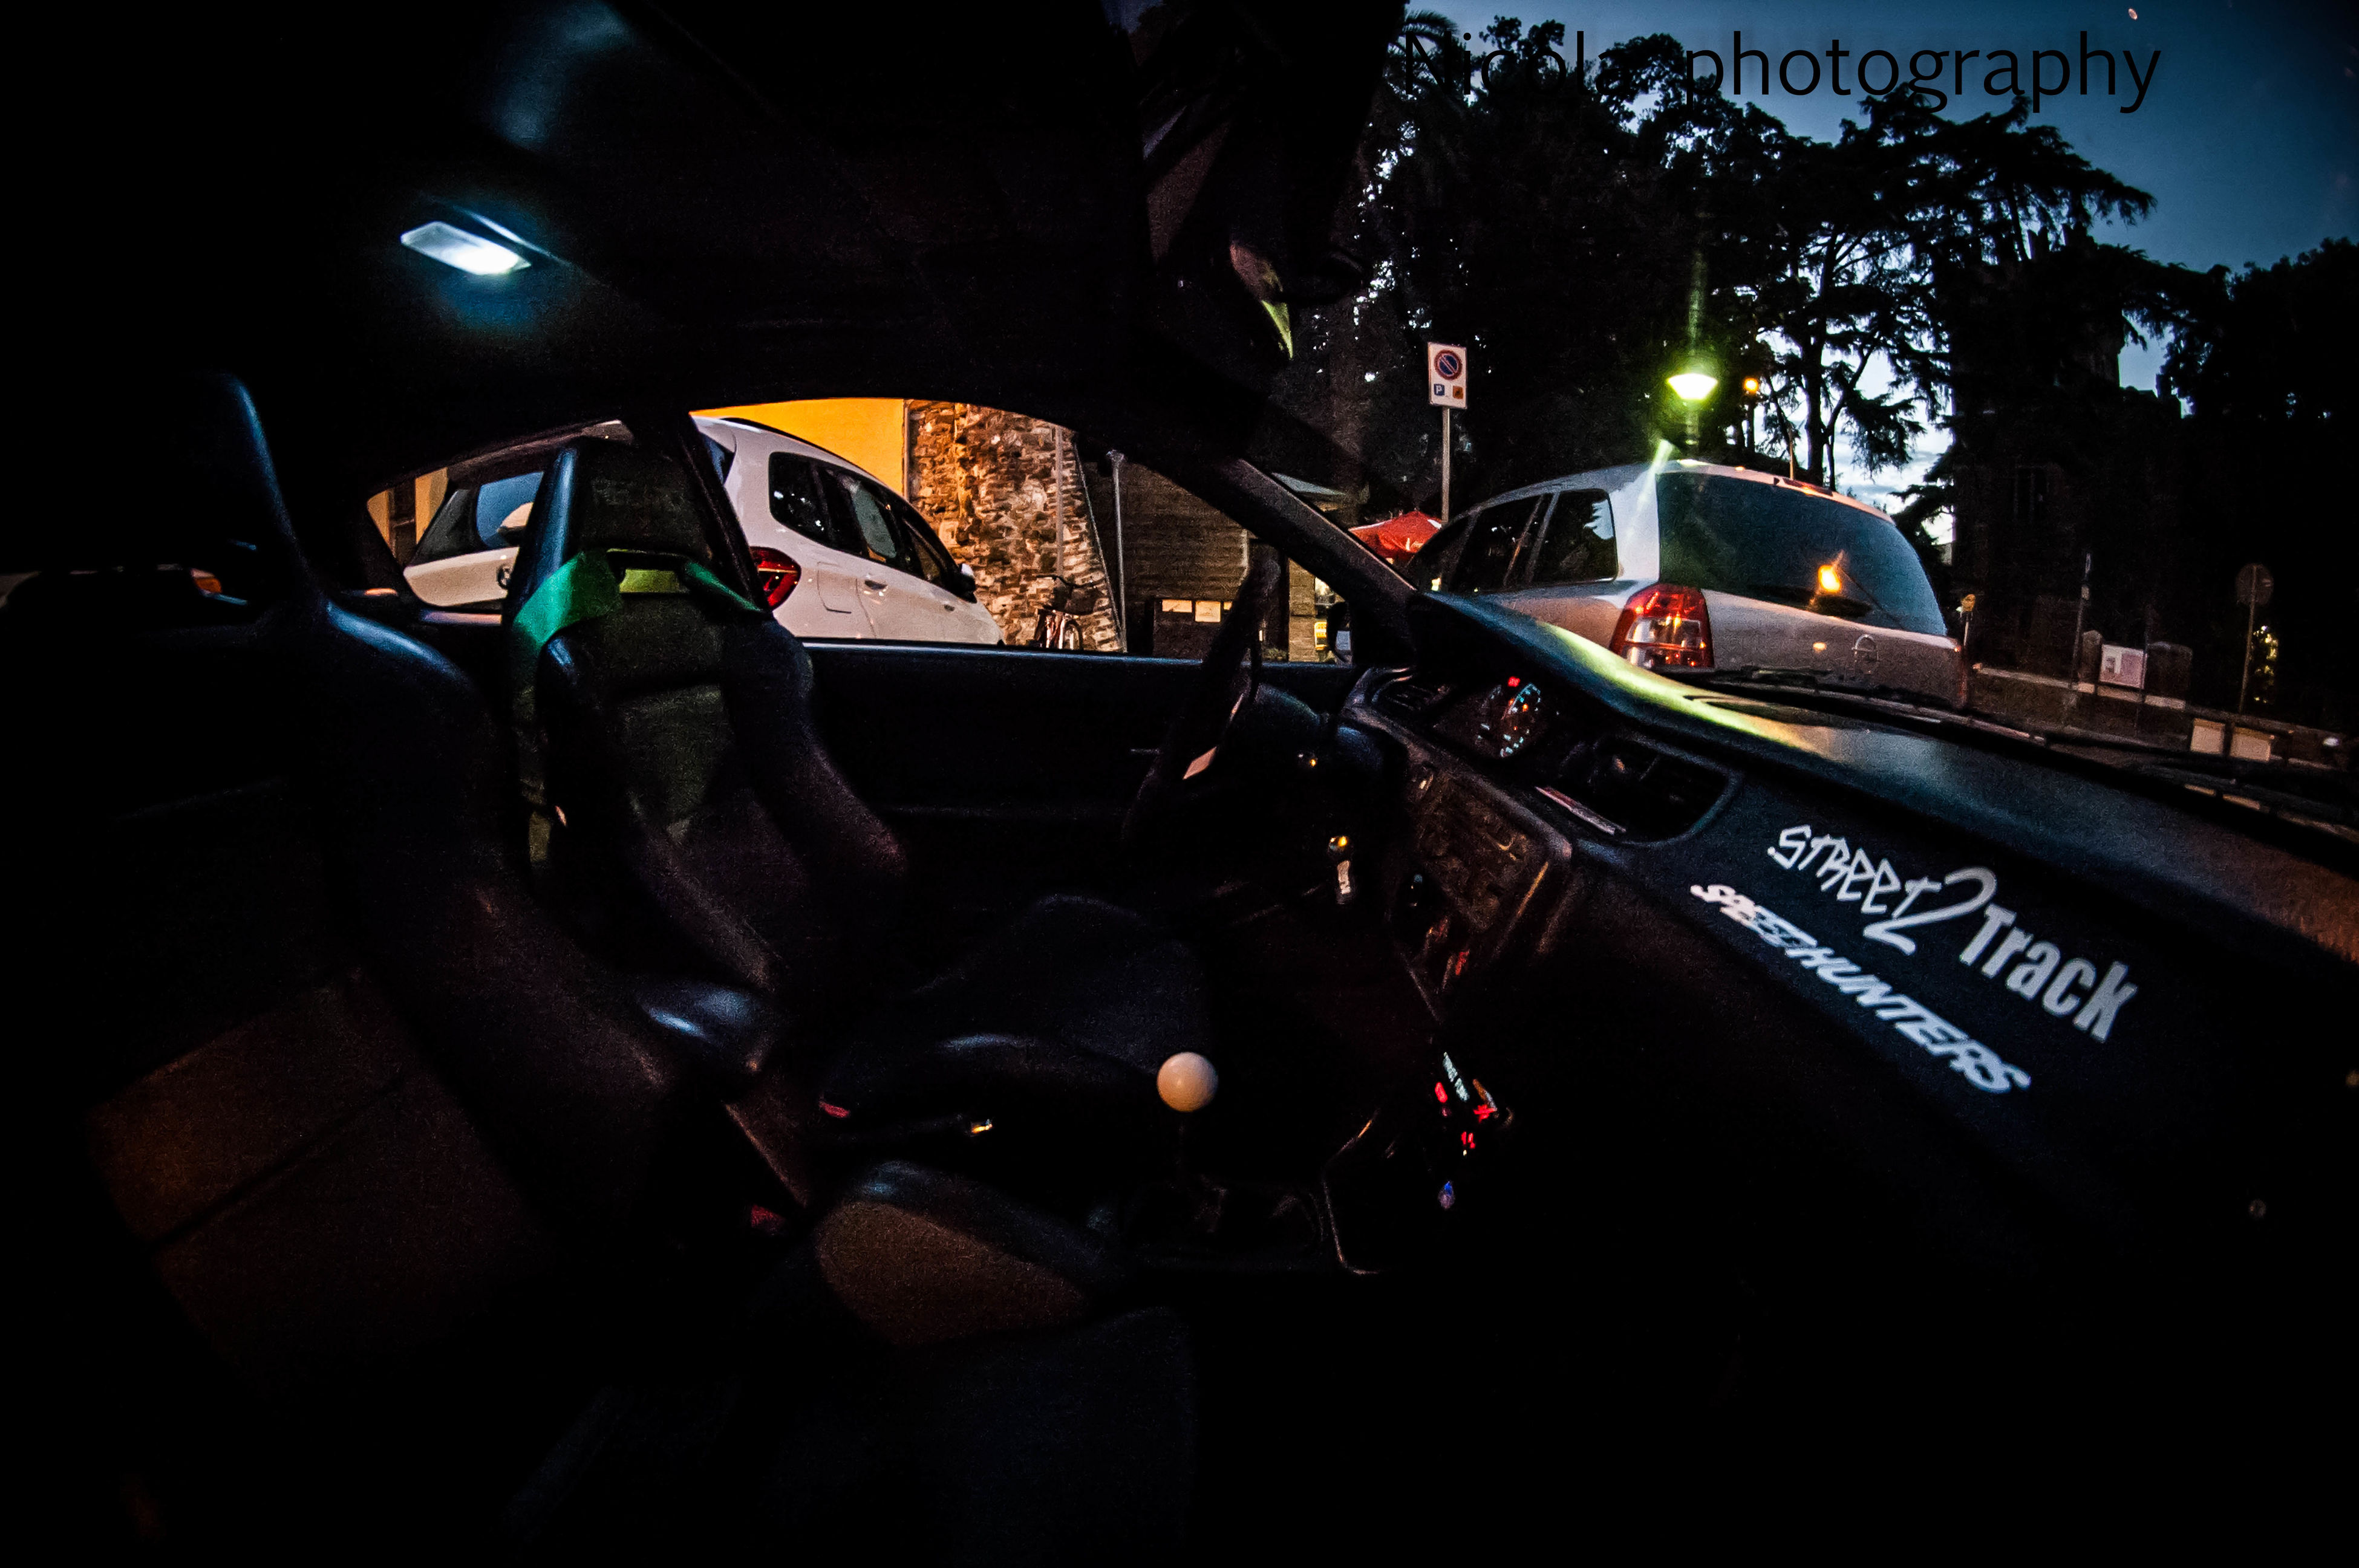 land vehicle, mode of transport, car, transportation, illuminated, car interior, dashboard, street, night, travel, road, vehicle interior, parking, motorcycle, roadside, parked, stationary, road trip, tail light, vehicle, person